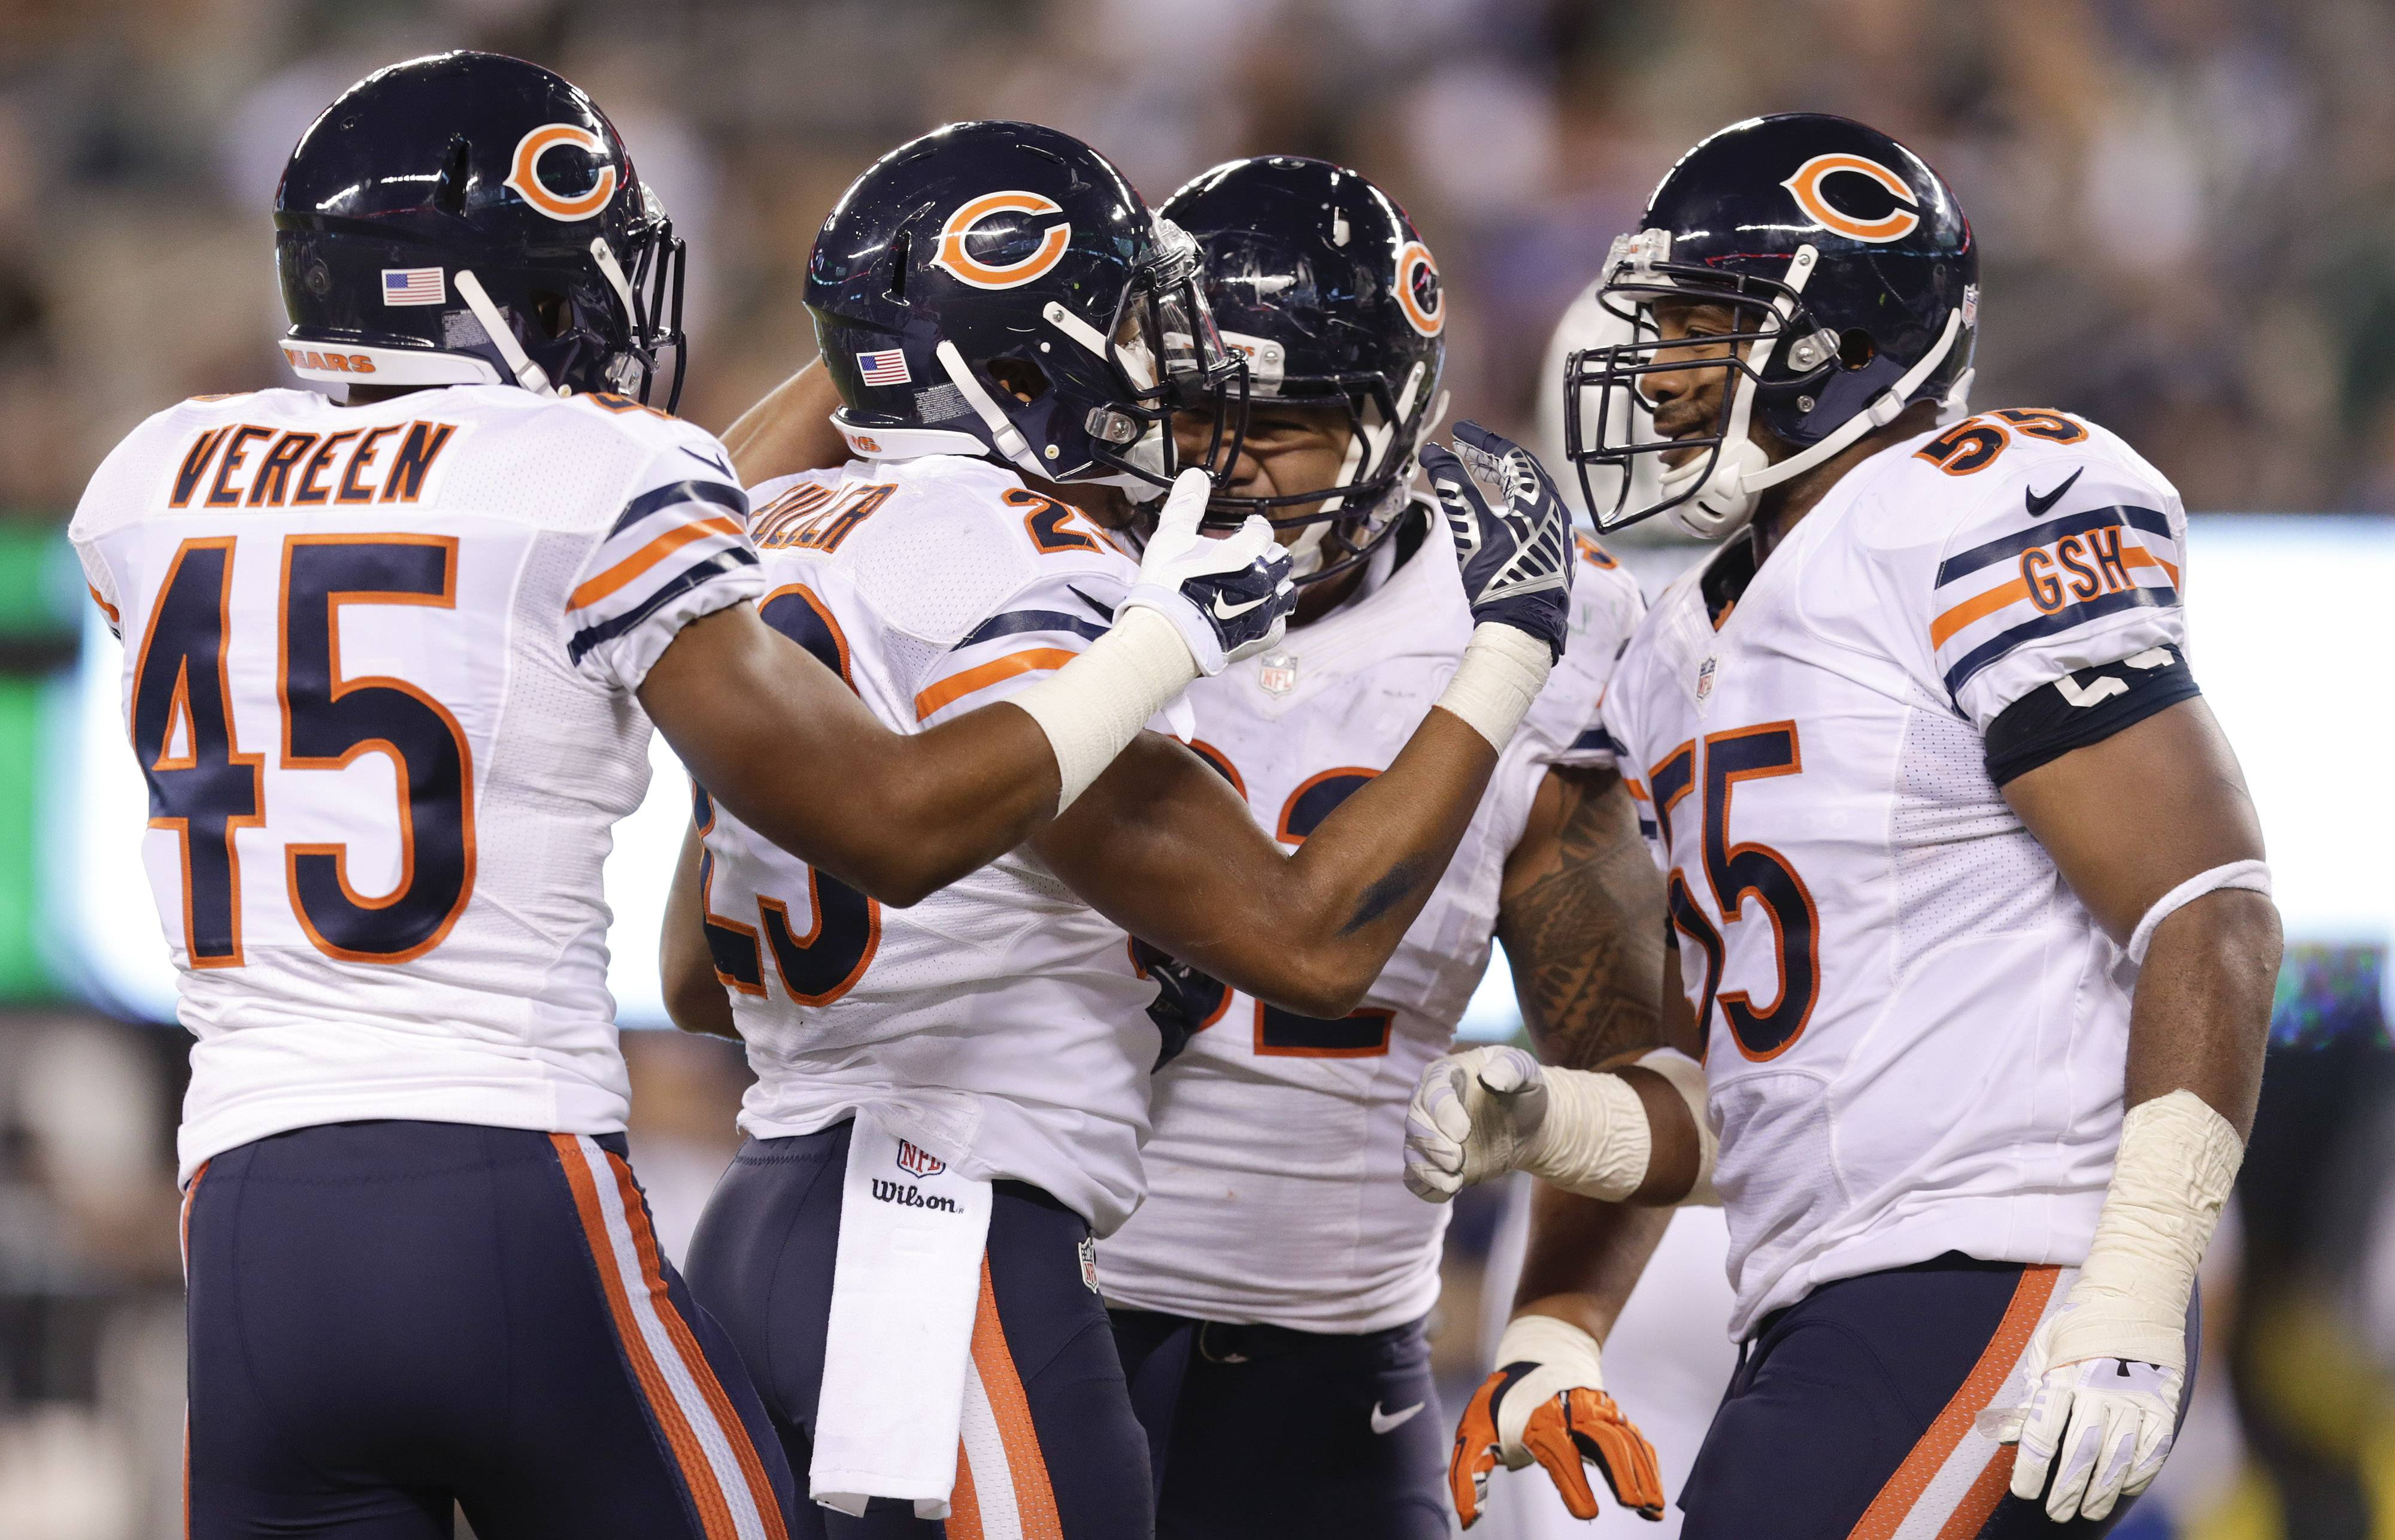 The overhaul of the Bears' defense continues with Wednesday's first of 10 OTA (organized team activity) practices at Halas Hall over the next three weeks. That includes the conversion from a 4-3 alignment to a 3-4, which has become more popular in the NFL in recent years and is the preference of new defensive coordinator Vic Fangio.